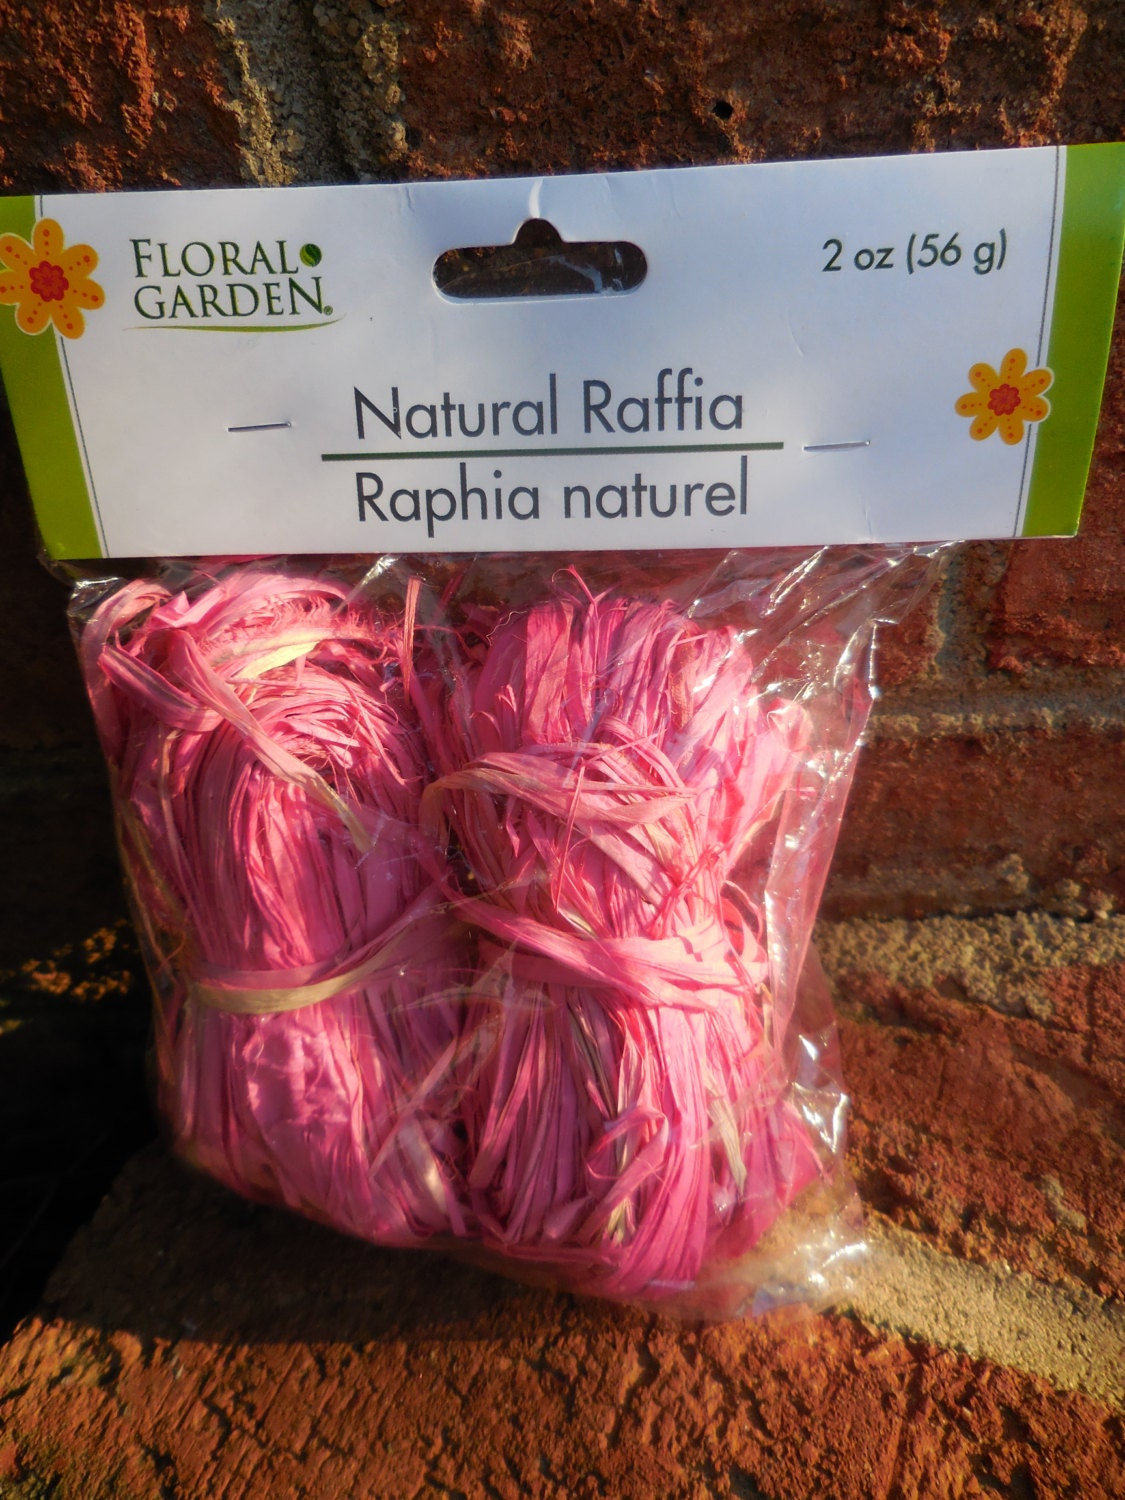 Decorating With Raffia Floral Garden Natural Raffia 2 Oz Bags Pink Decorating Wreaths